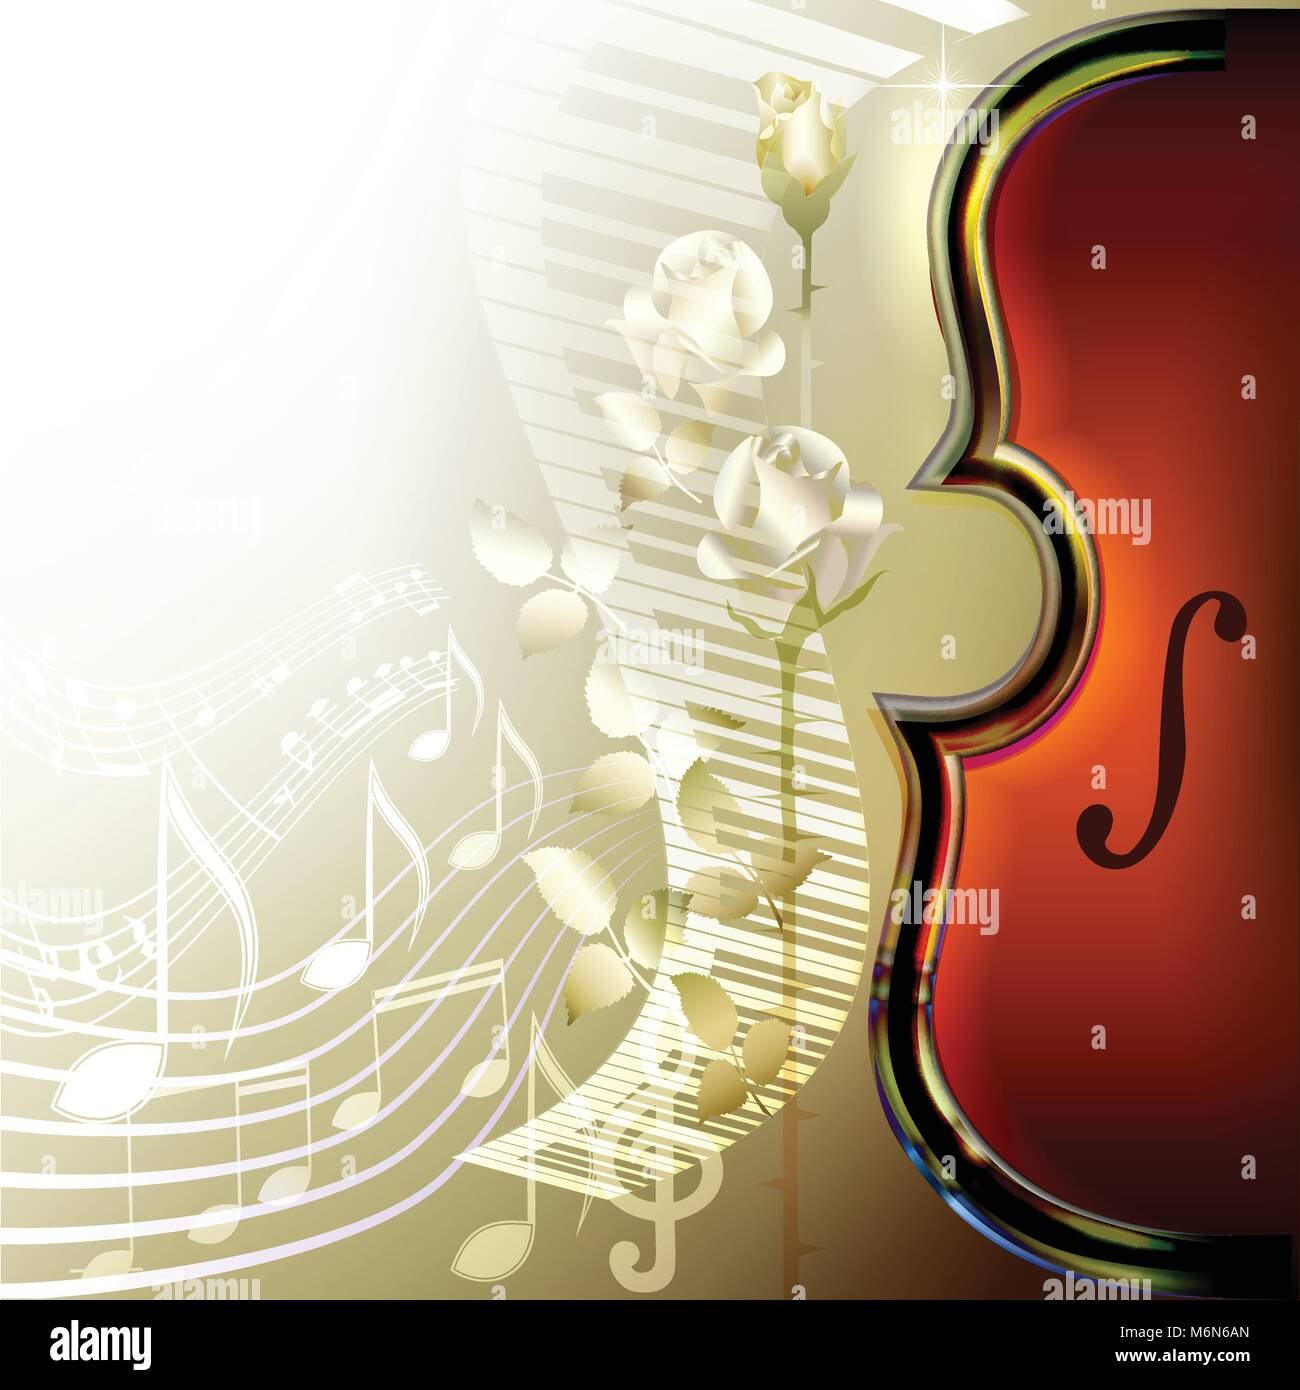 Piano Background Music: Classical Orchestra Poster Stock Photos & Classical